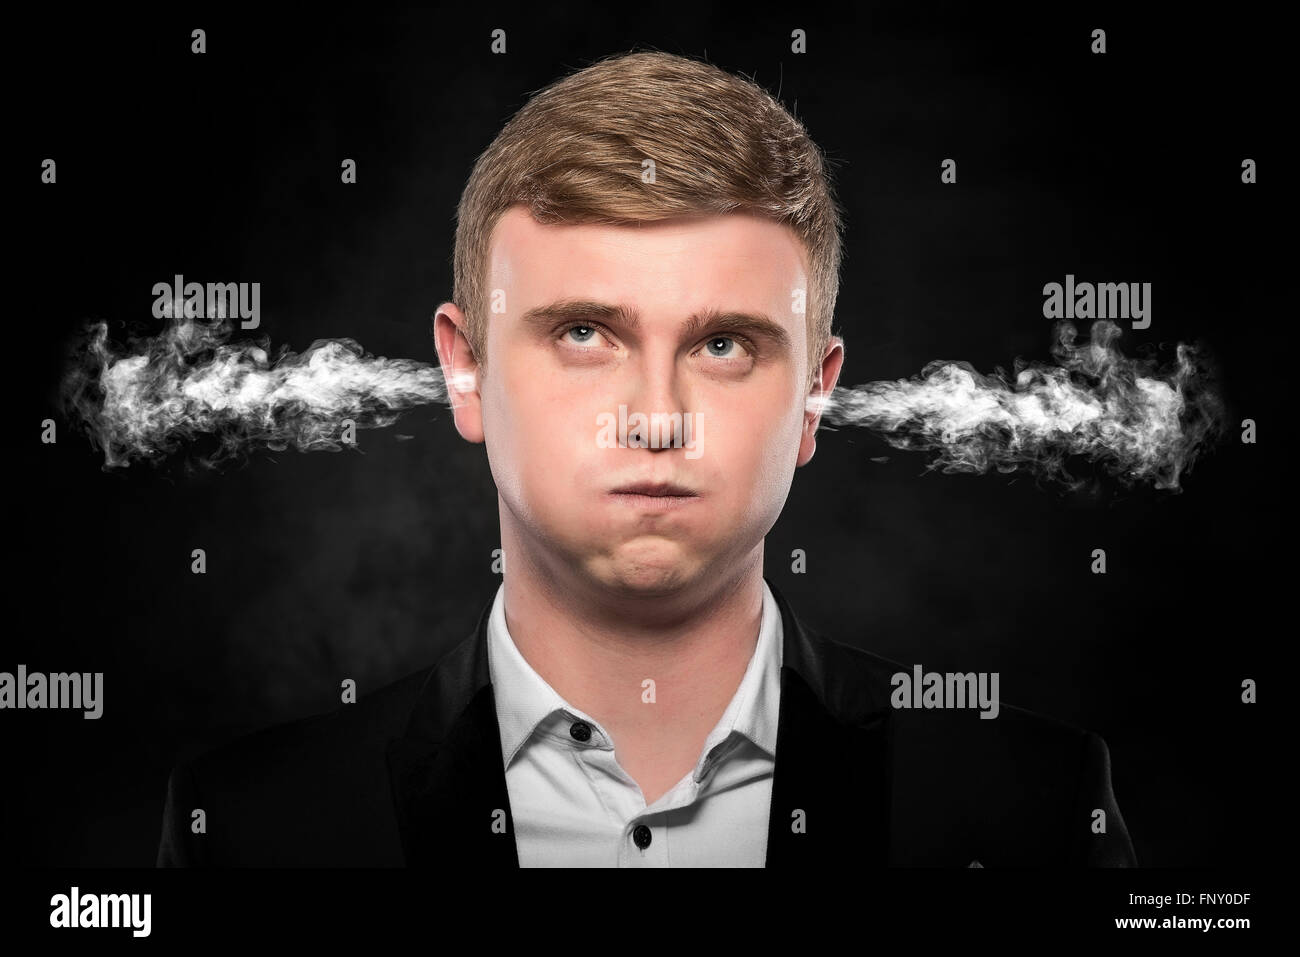 Stressful man with smoke coming out from his ears. - Stock Image